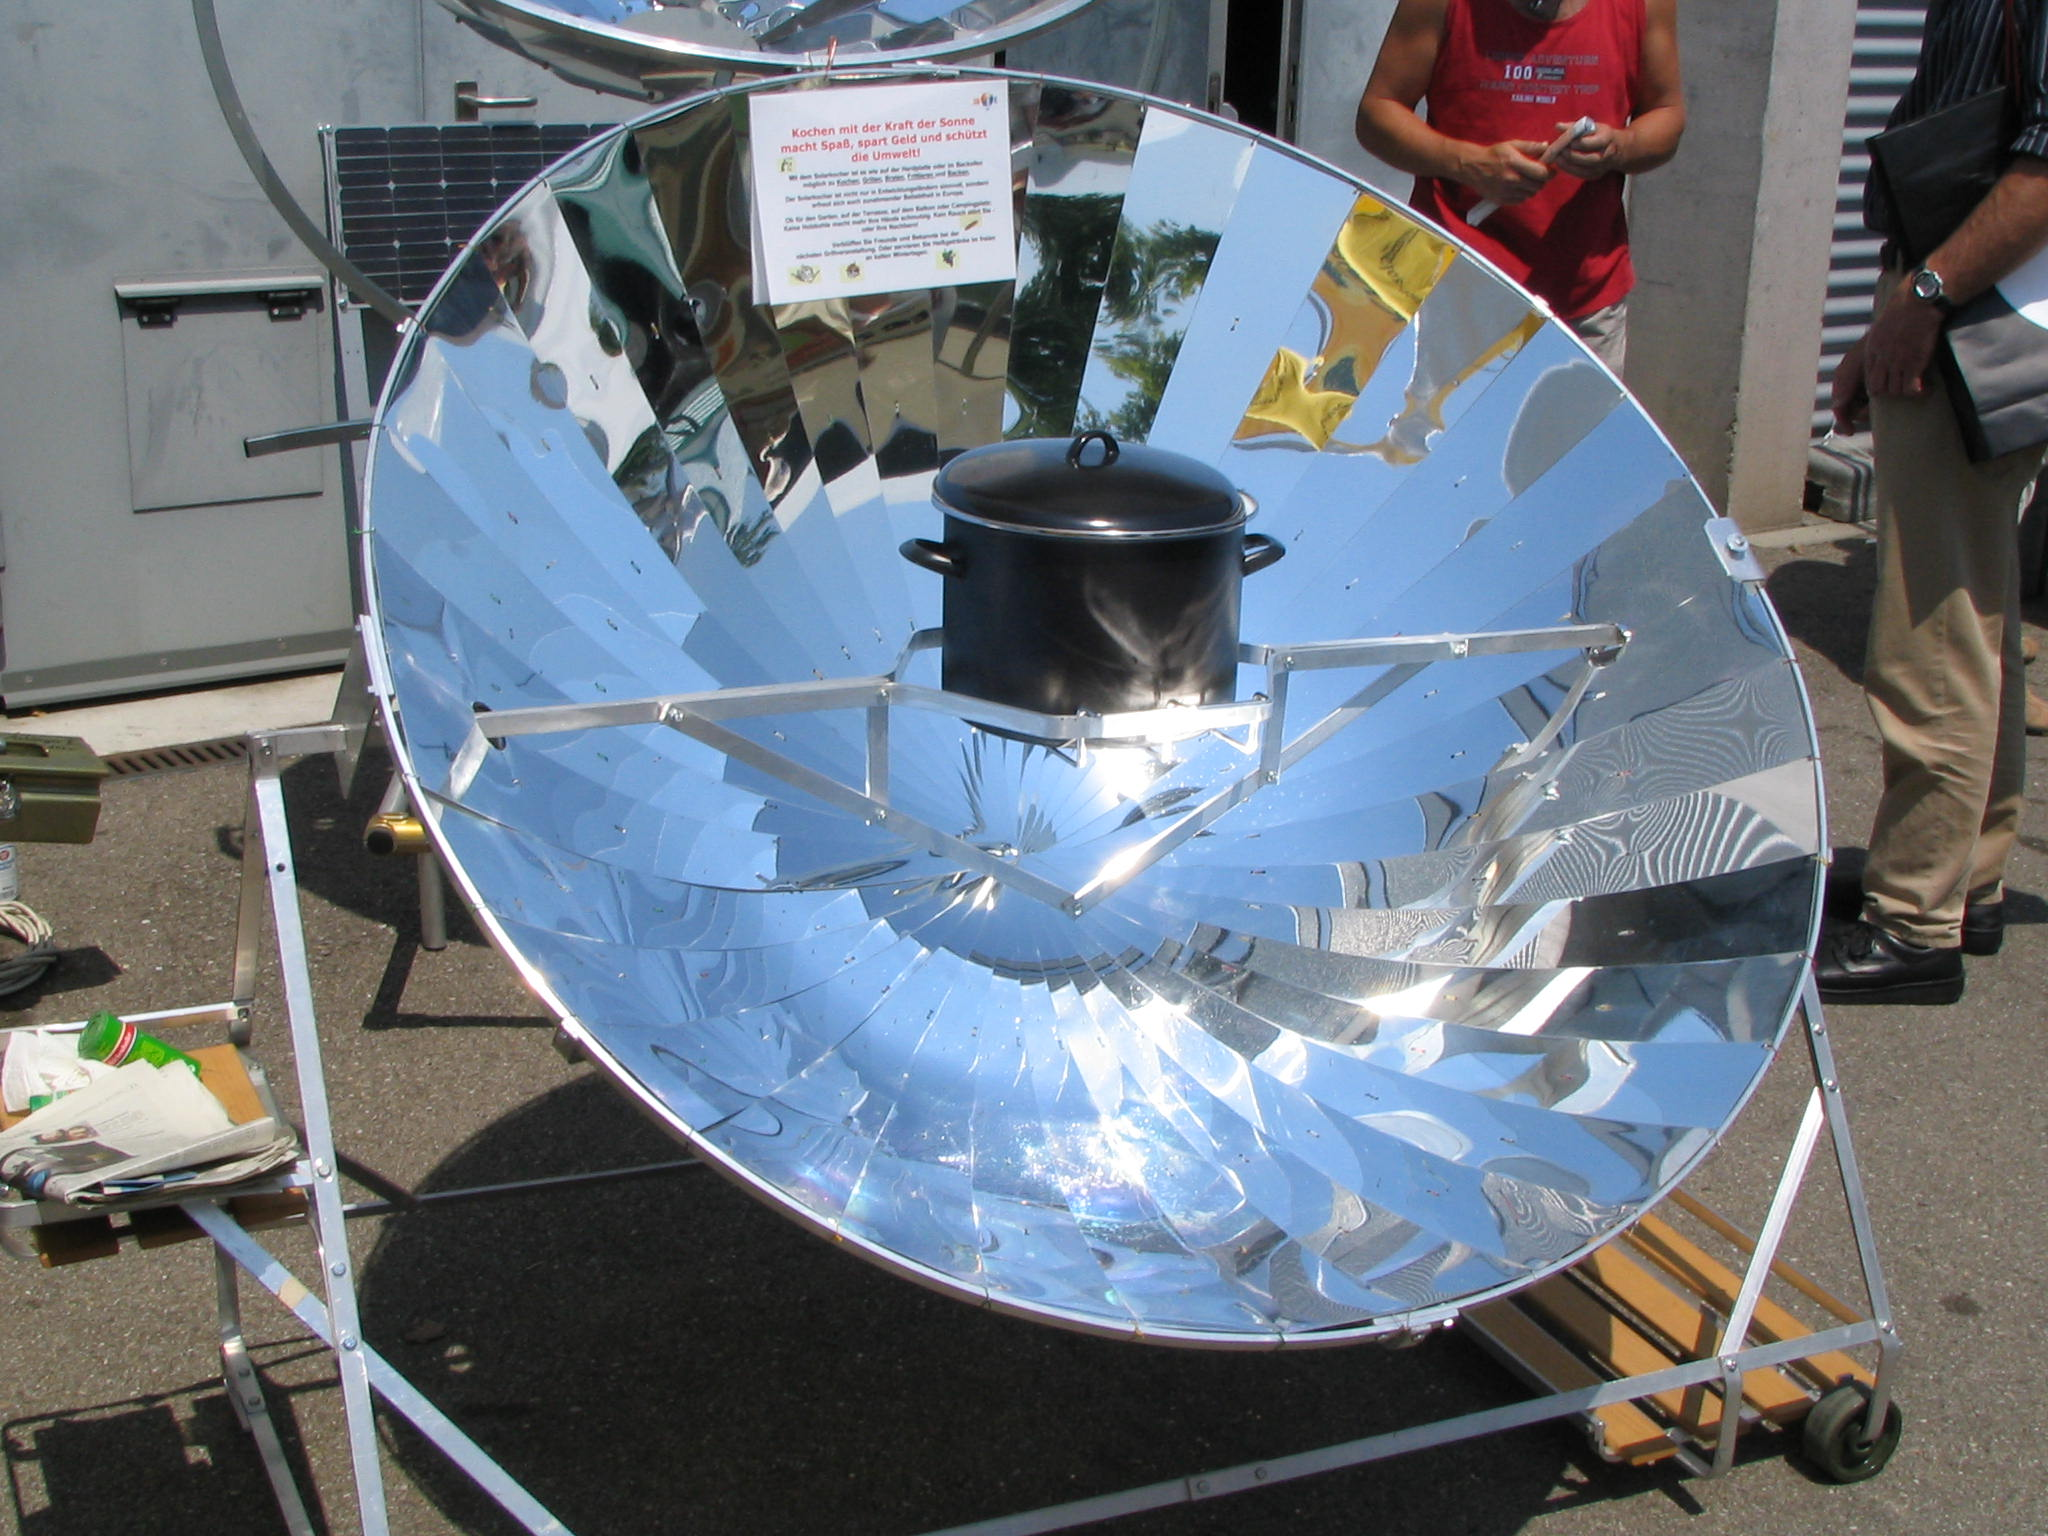 solar cooker Solar ovens included in this wiki include the gosun stove sport, solcook all season, sunflair portable deluxe, sun ovens all american, rand solar cooker, and solavore sport solar ovens are also .